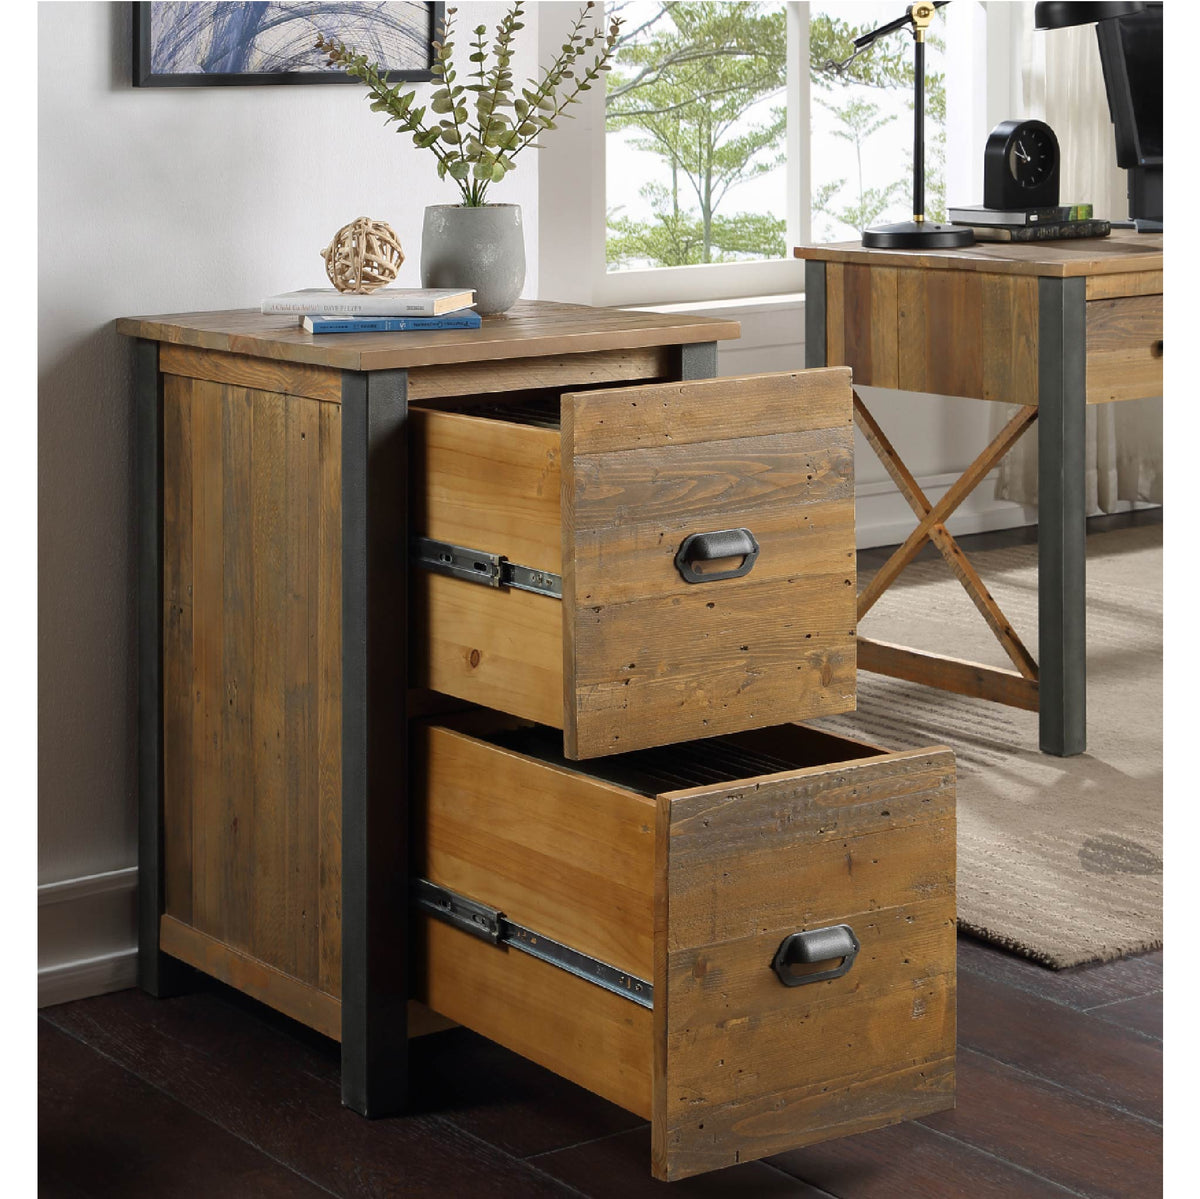 Open Drawer view of Urban Elegance Reclaimed Wood Office Filing Cabinet